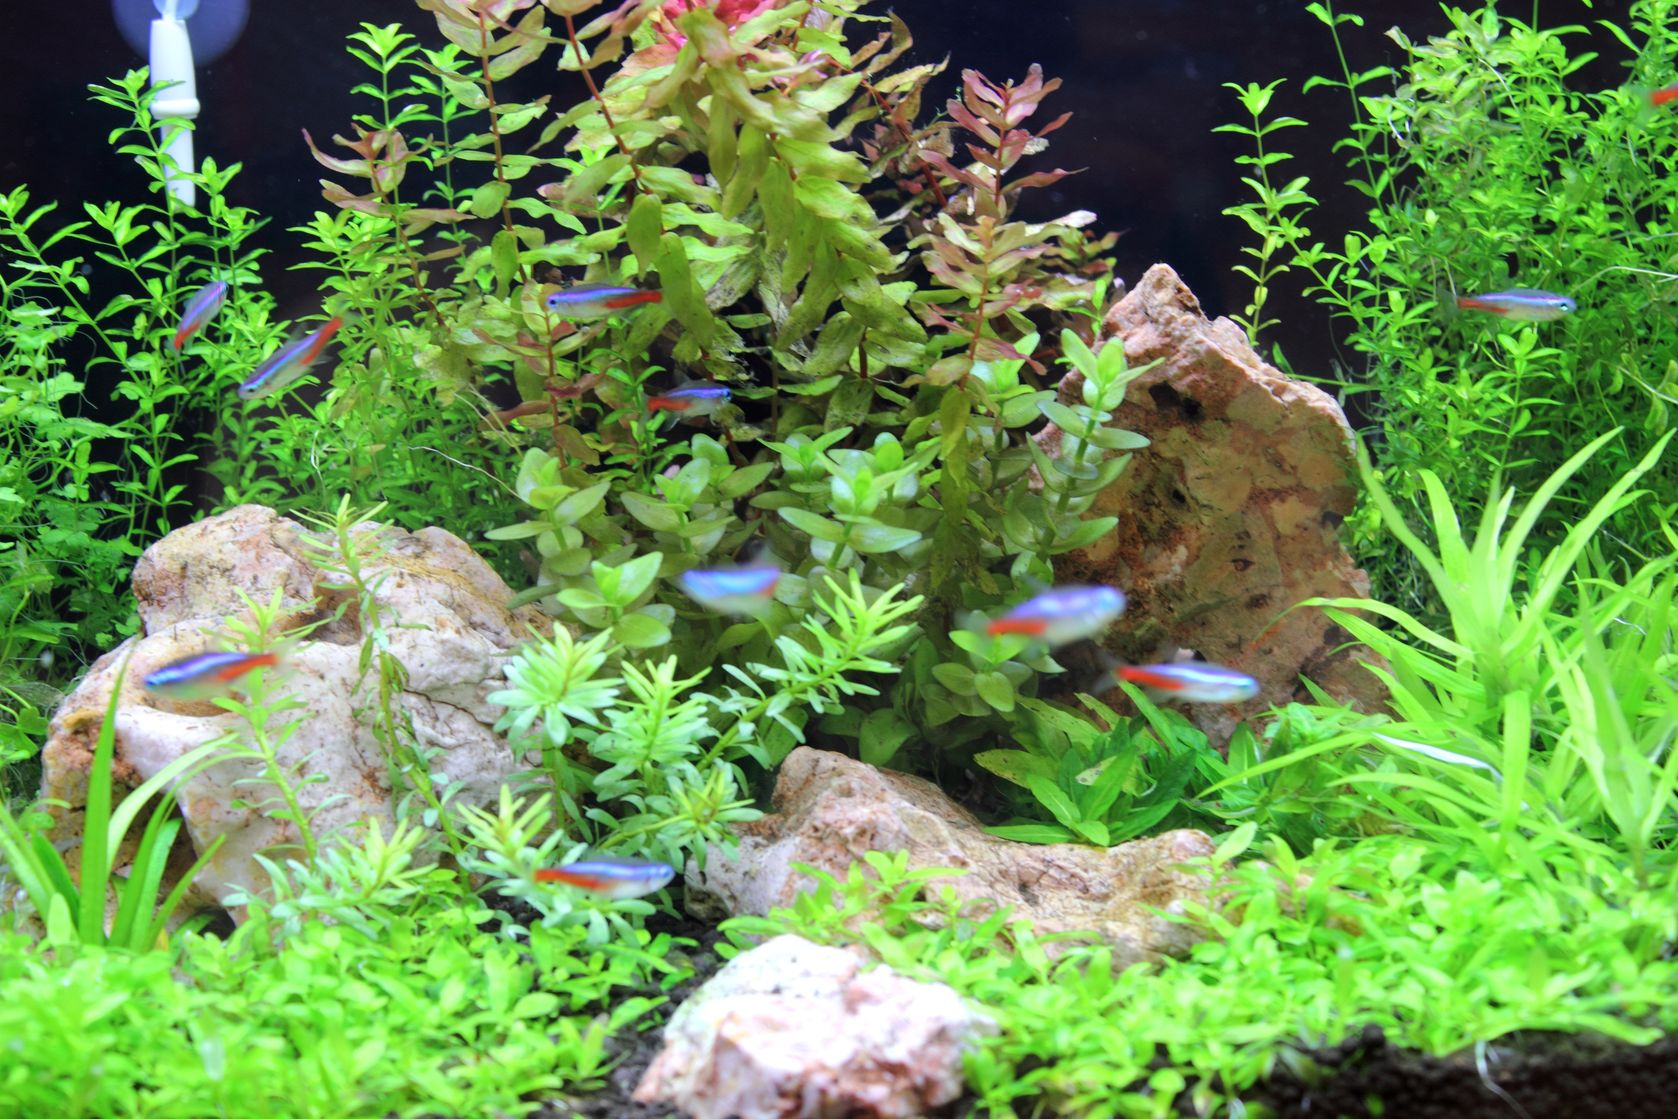 A beautiful planted tank with several Neon Tetras.